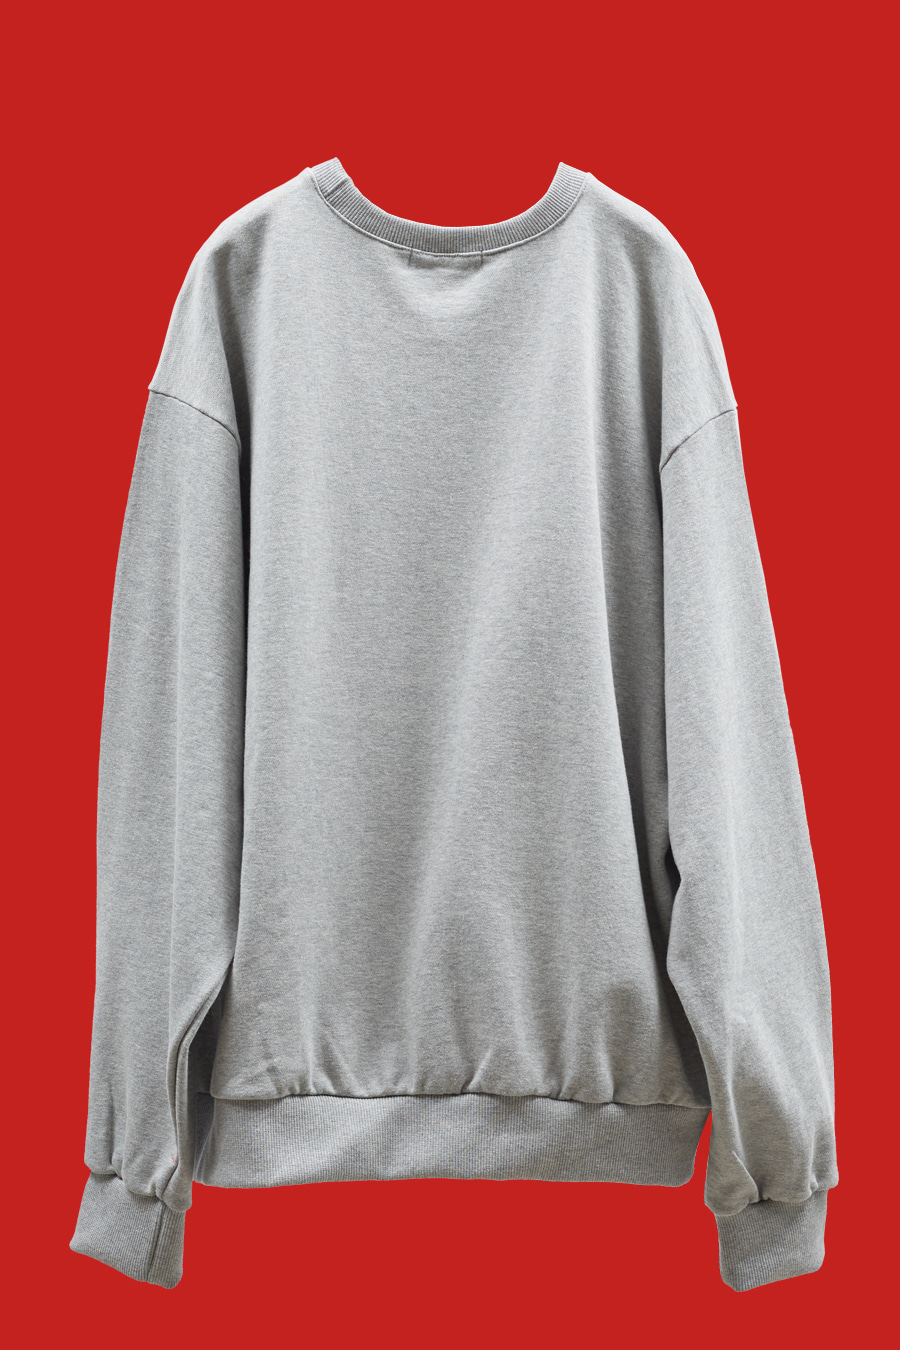 20S/S Signature Logo Sweatshirt - Grey